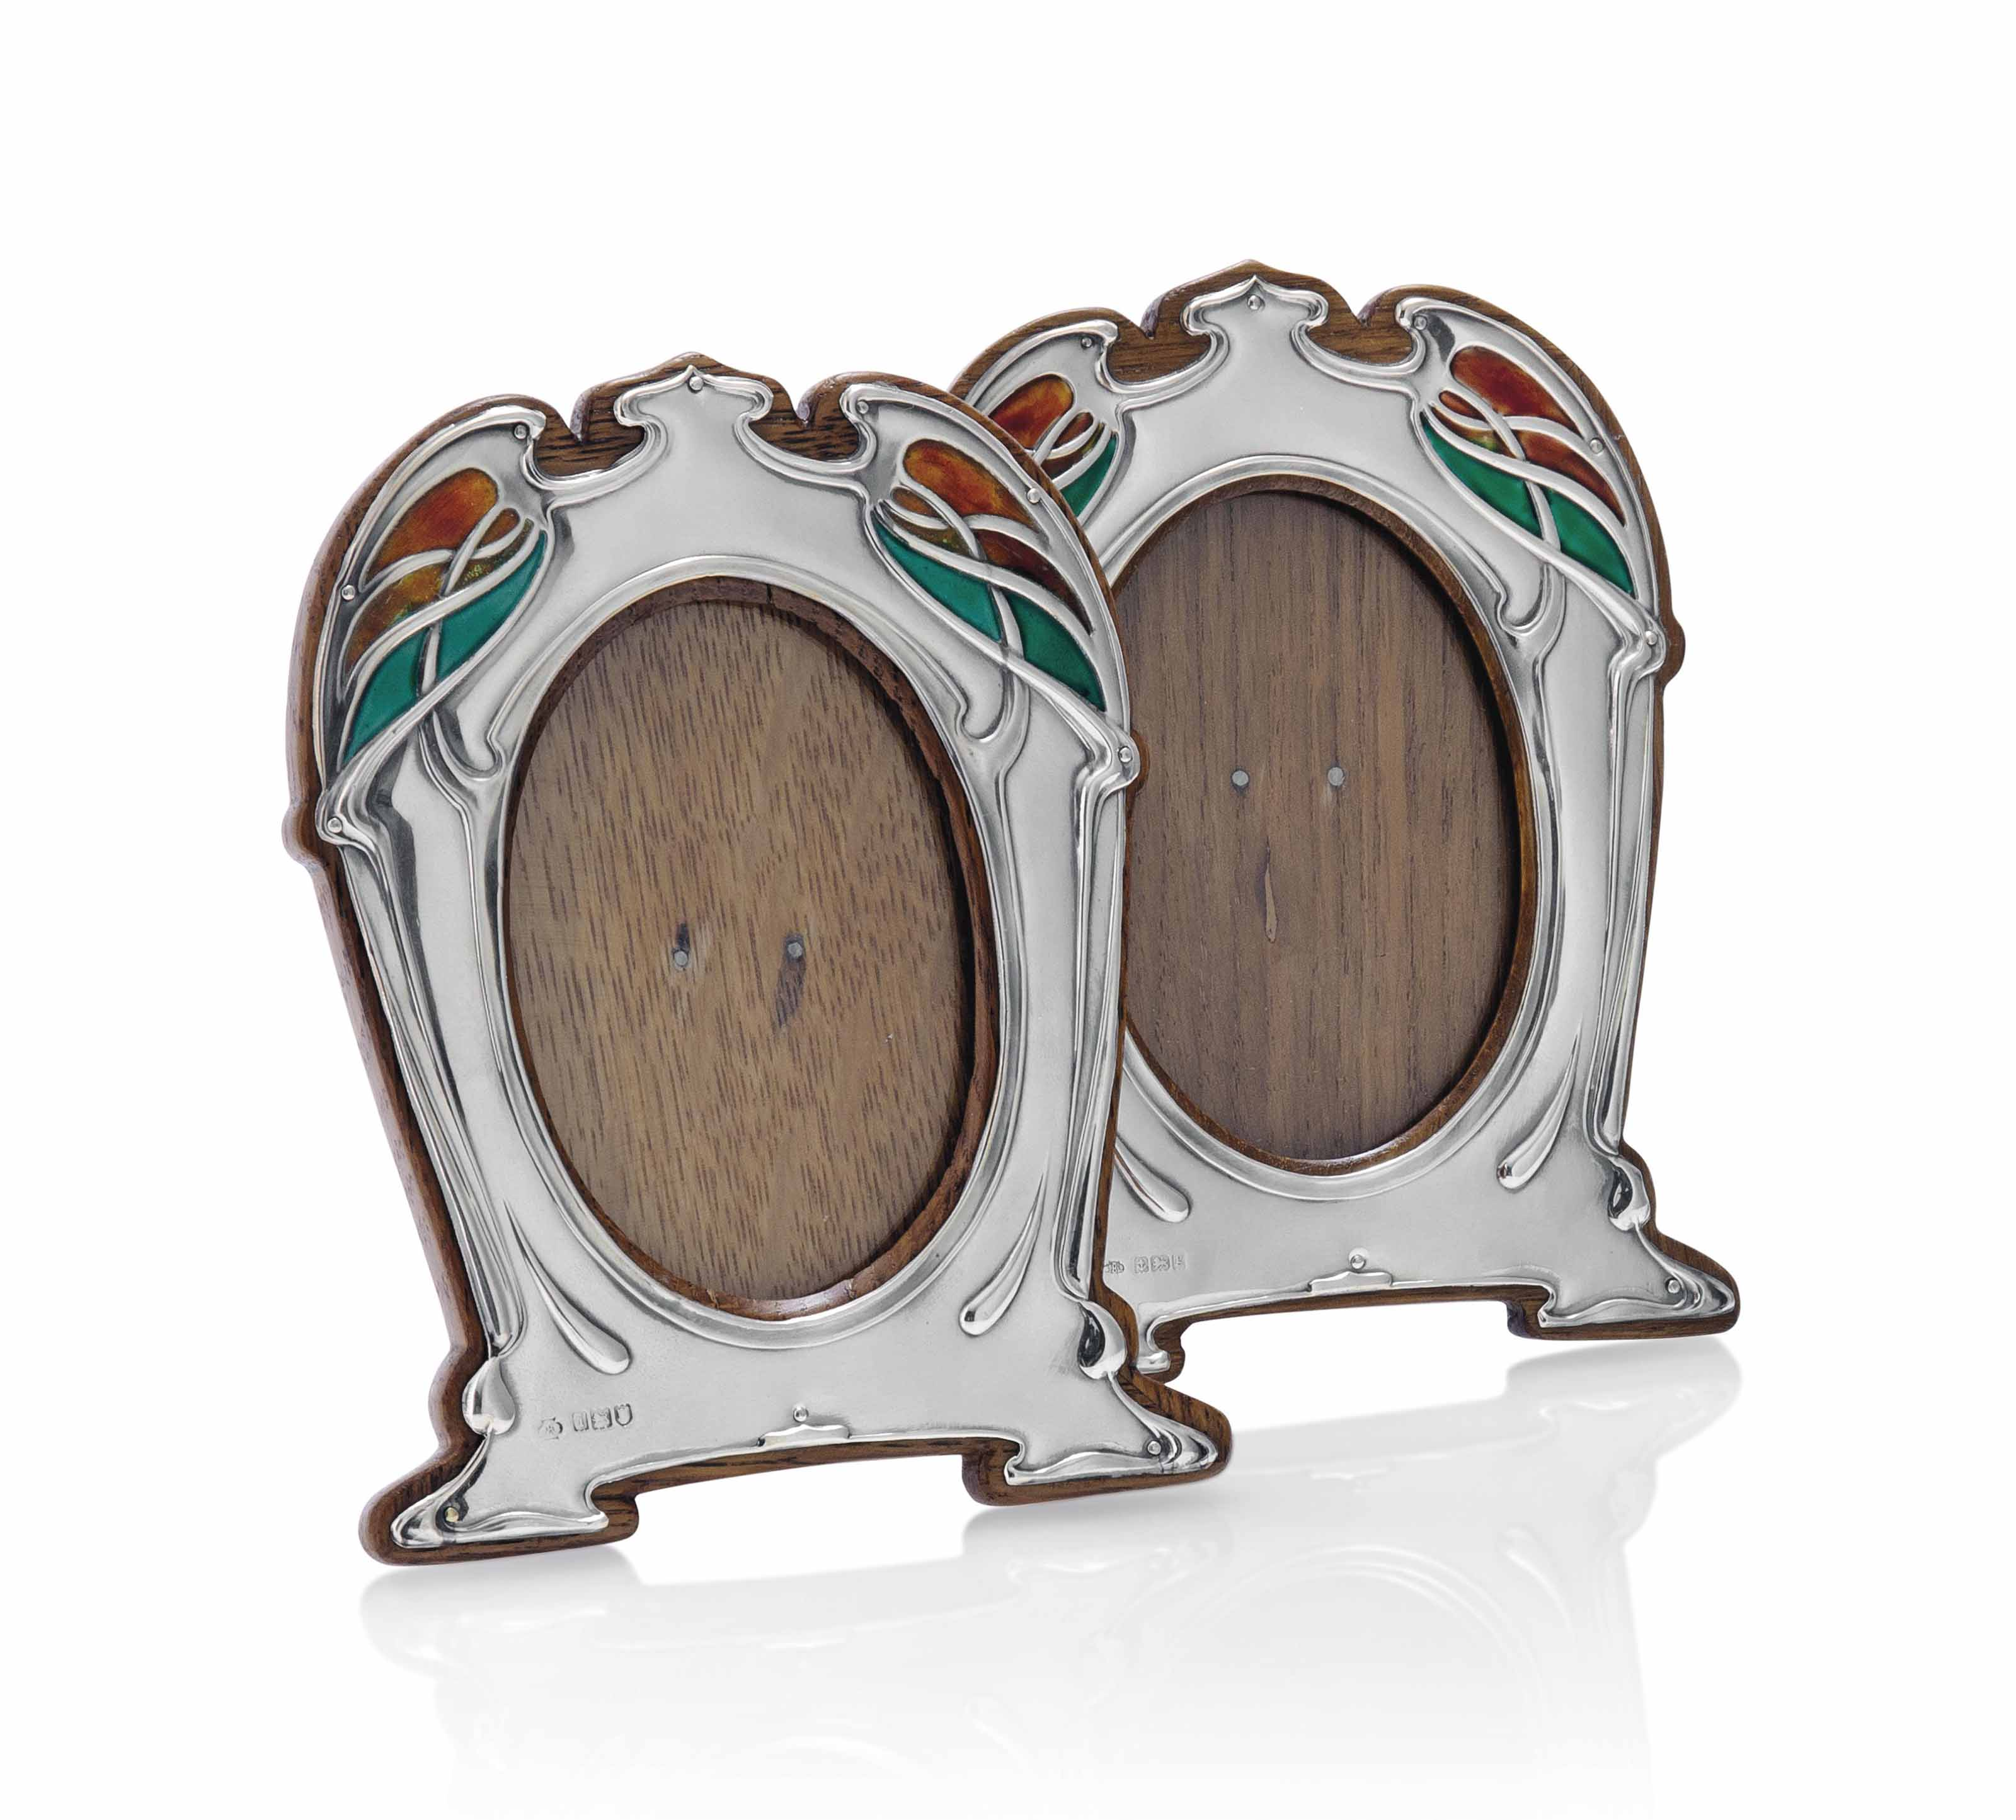 A PAIR OF WILLIAM HUTTON & SONS LTD SILVER AND ENAMEL PHOTOGRAPH FRAMES